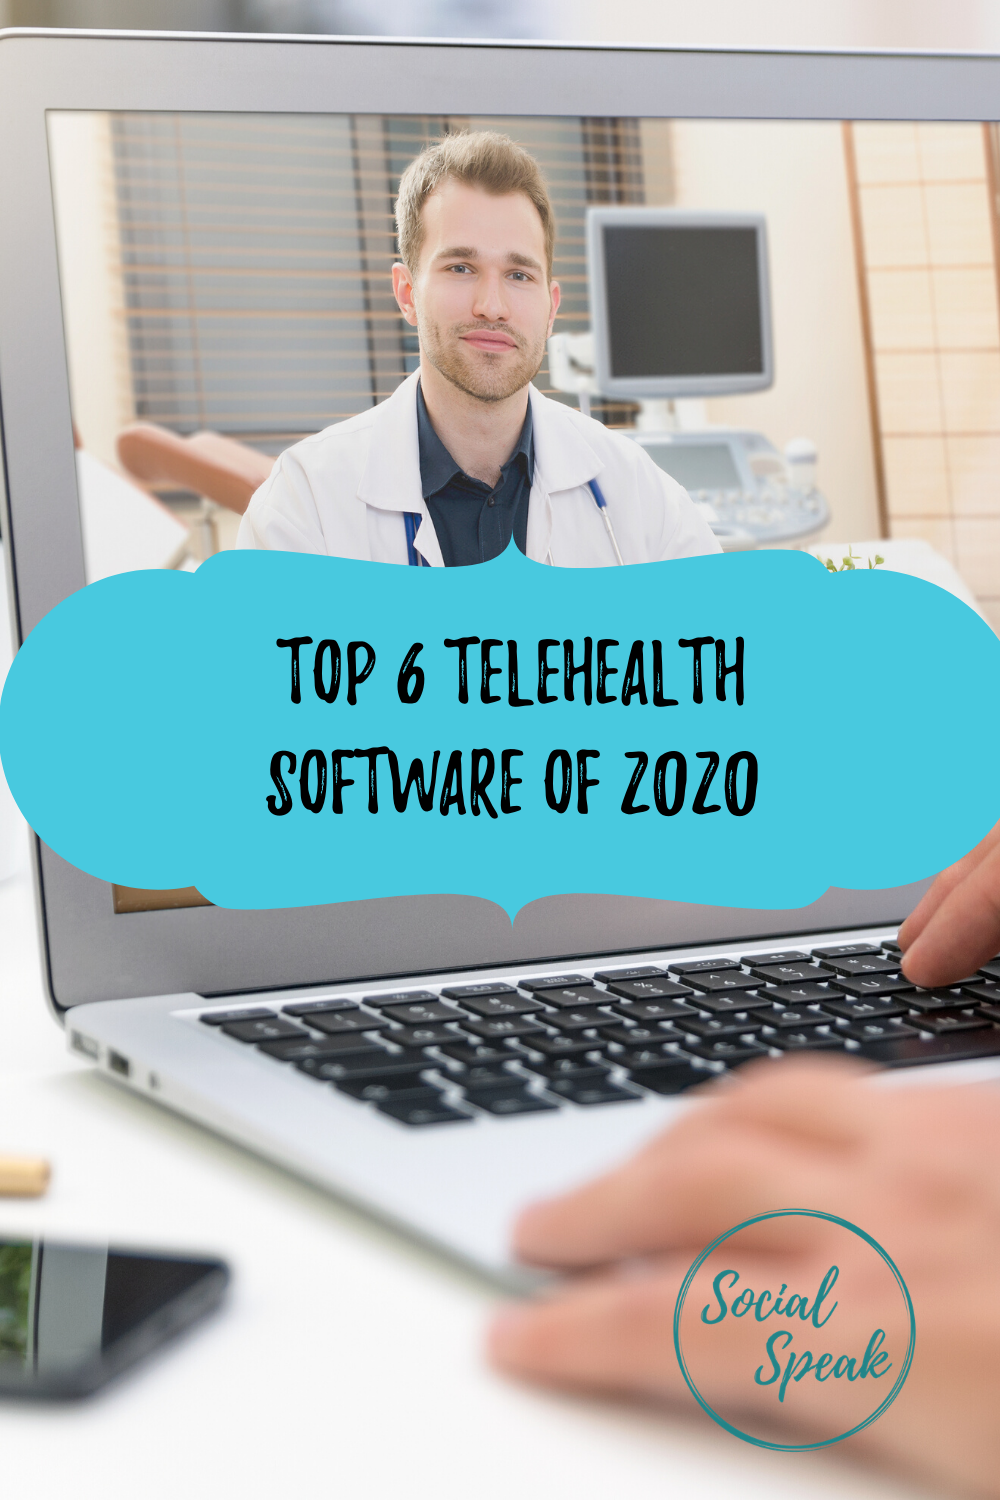 Top 6 Telehealth Software of 2020